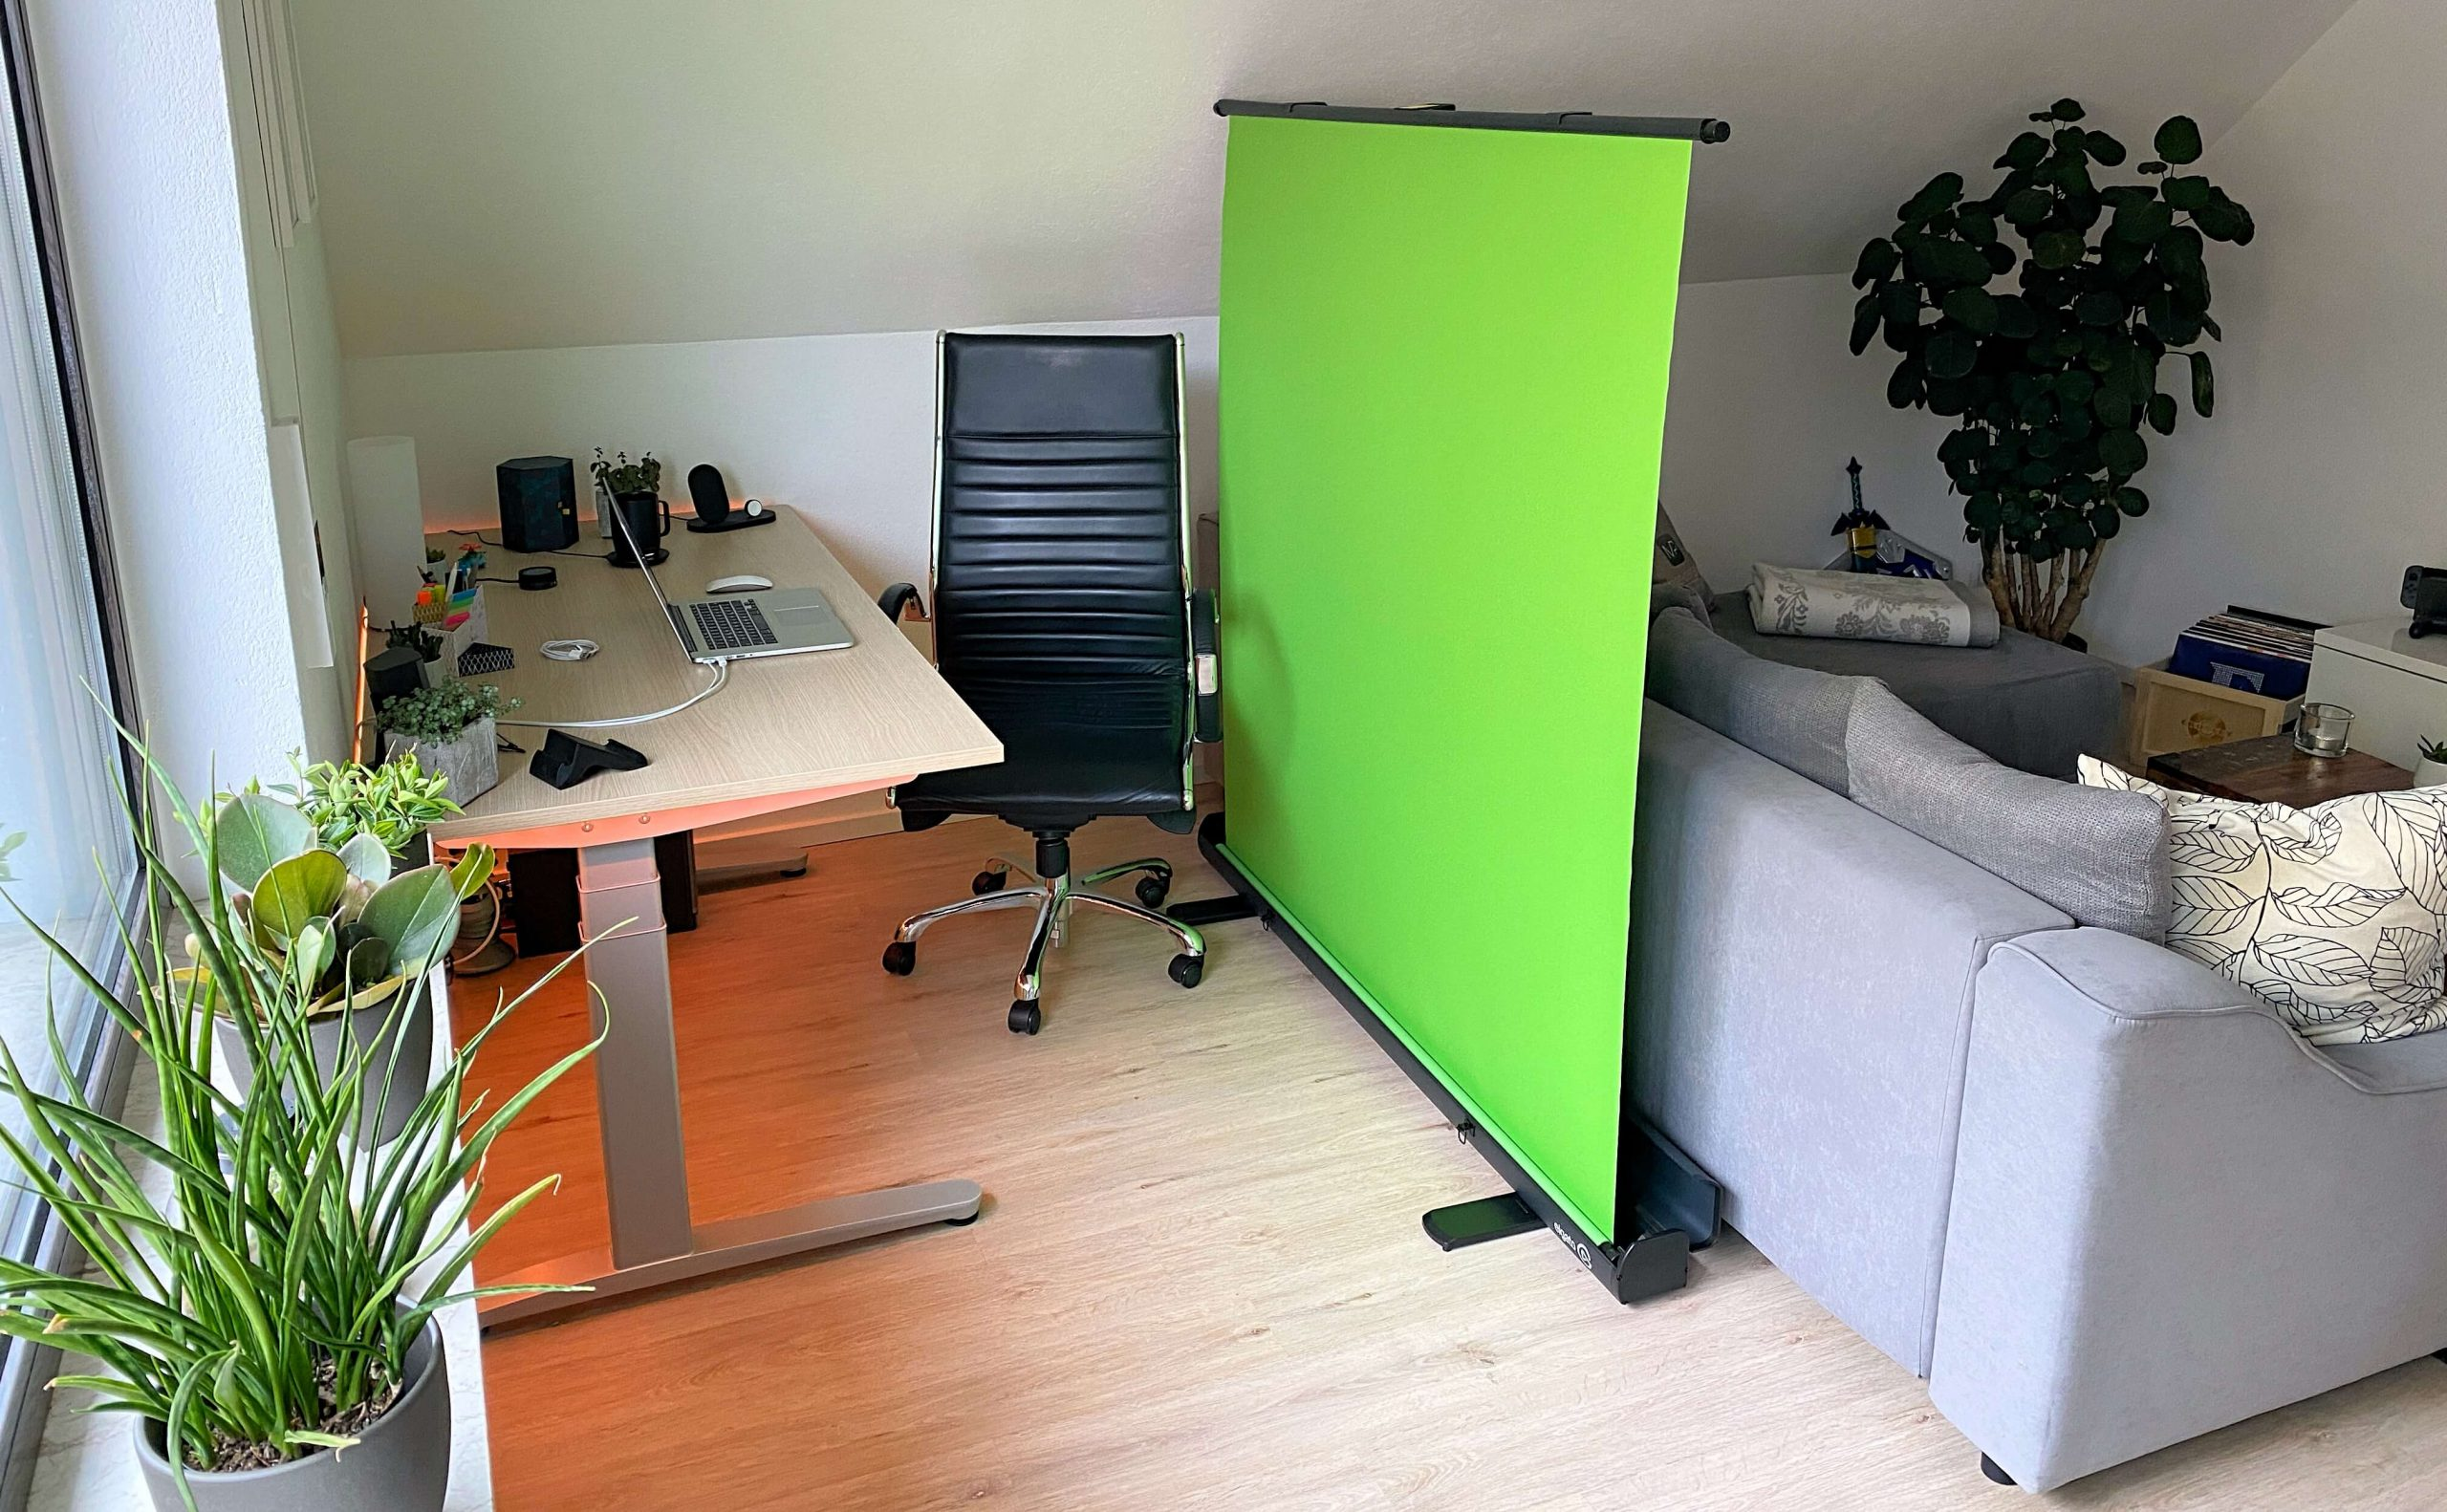 Green-Screen-von-Elgato-pro­fes­si­o­nelle-Hintergrundentfernung-im-Home-Office2-scaled Green Screen von Elgato - pro­fes­si­o­nelle Hintergrundentfernung im Home-Office